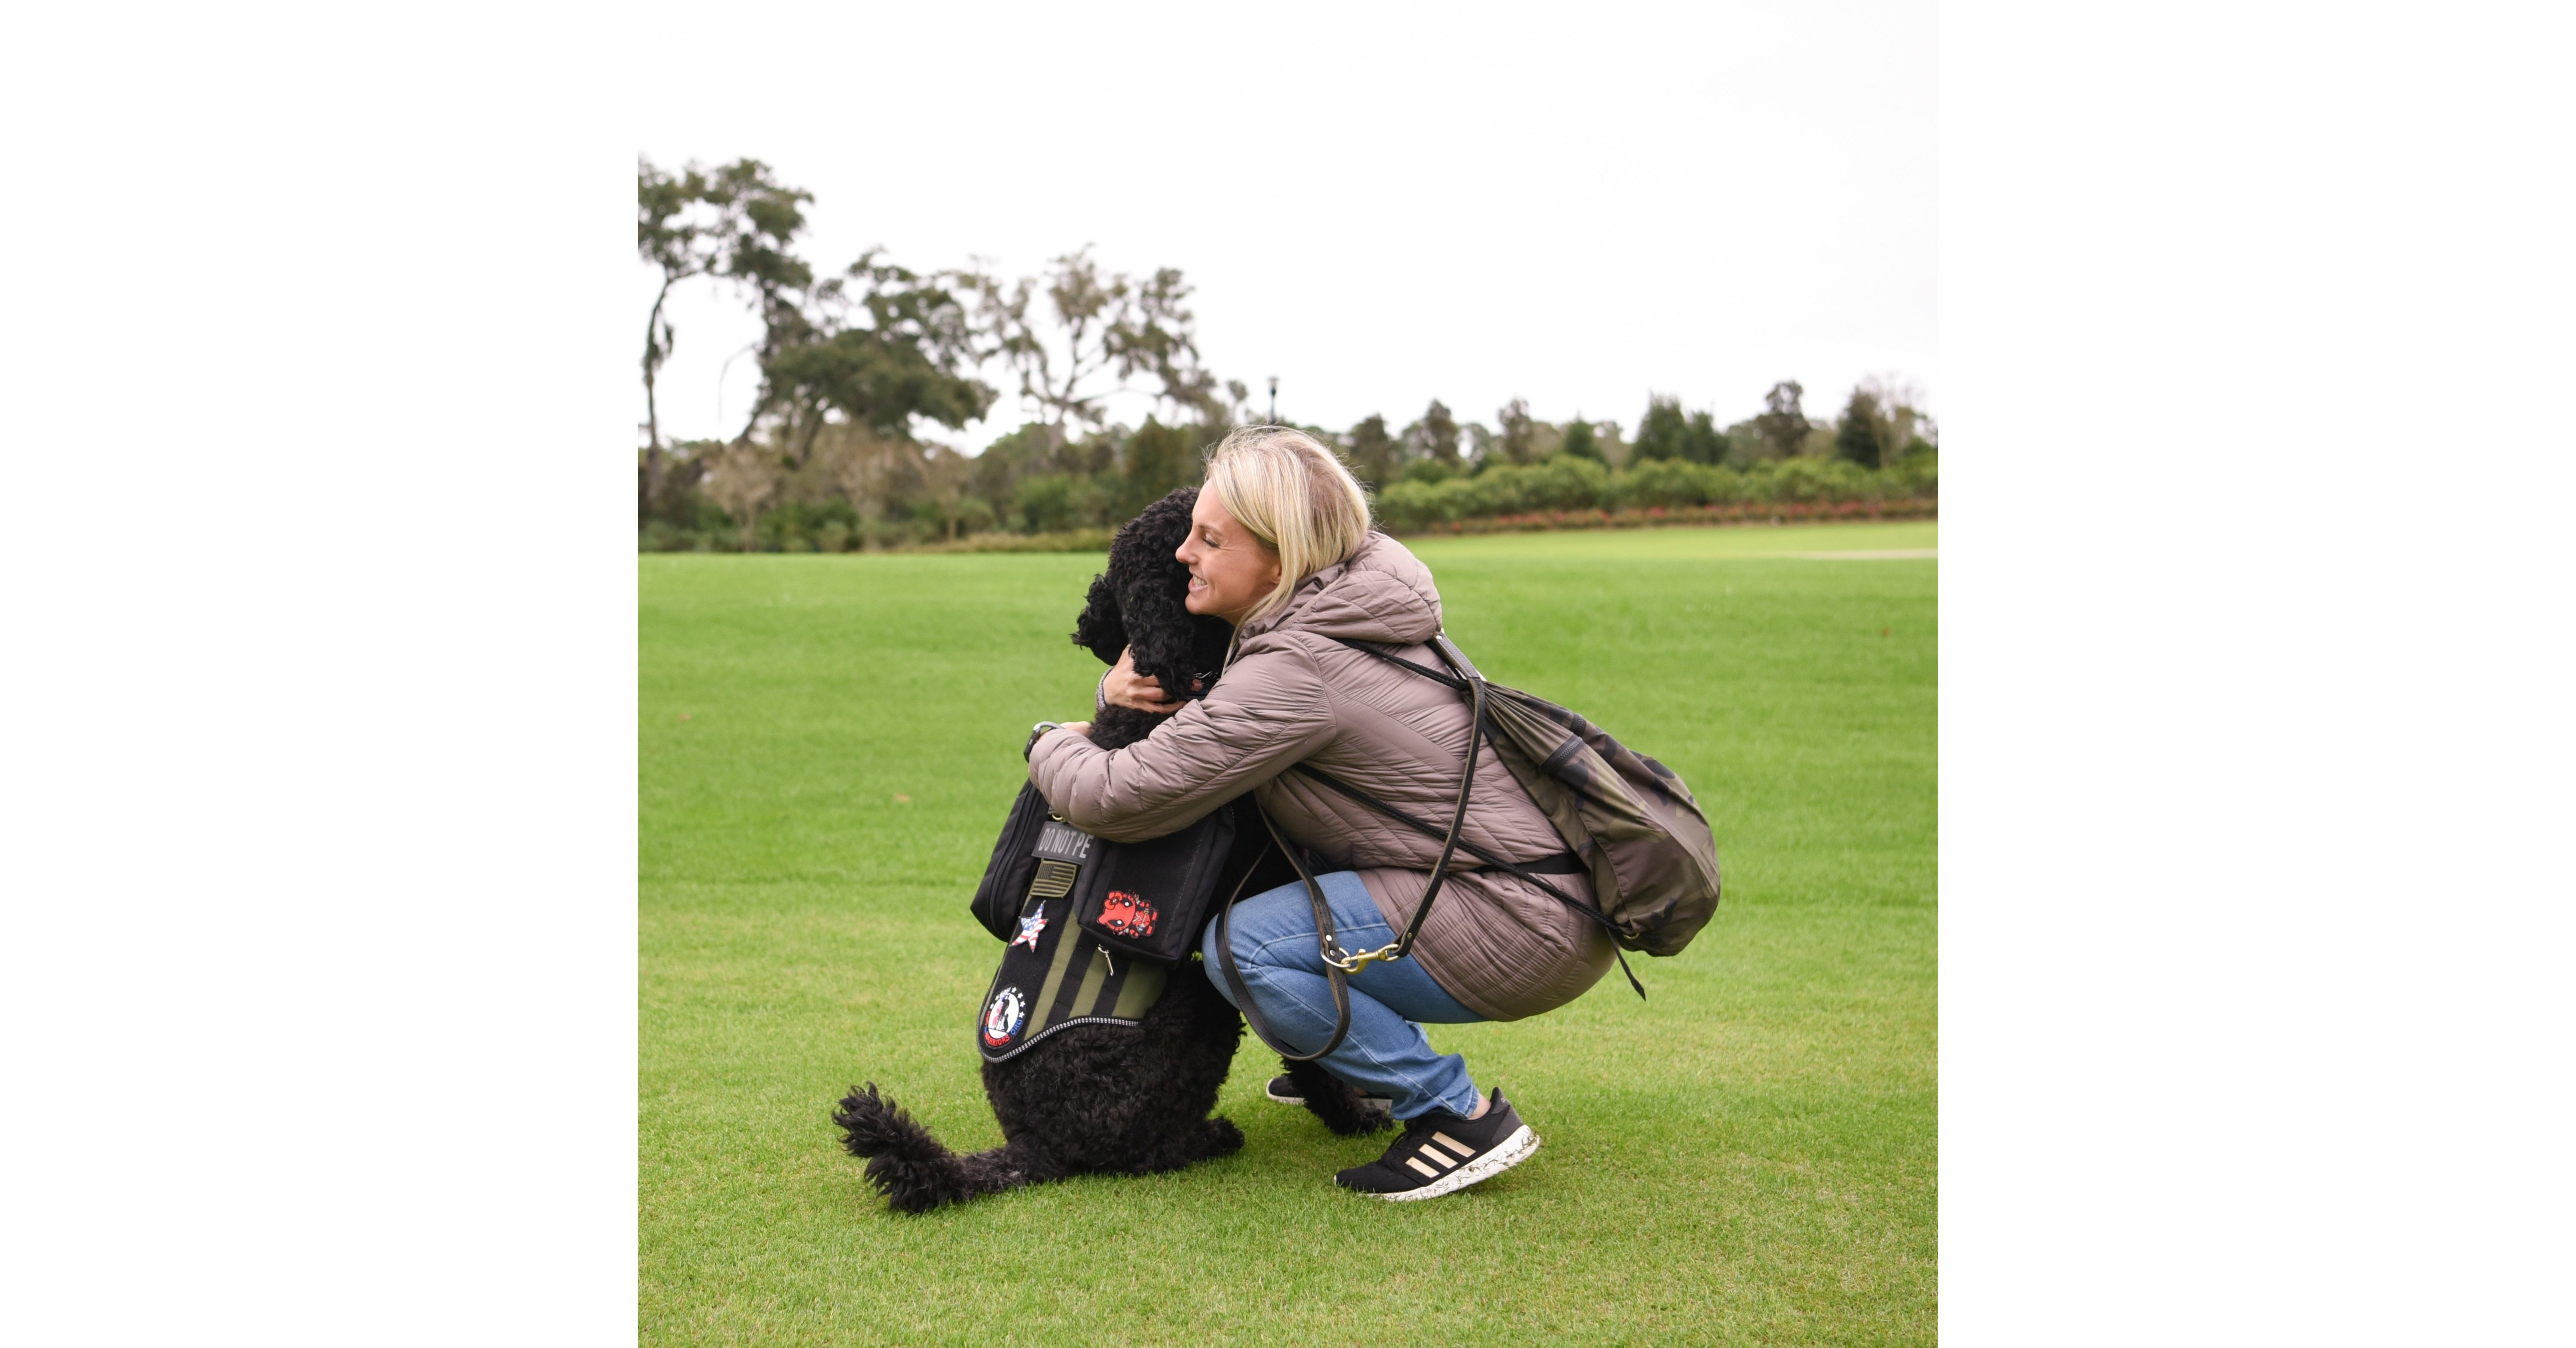 Study finds bond between military veterans and their service dogs unusually strong